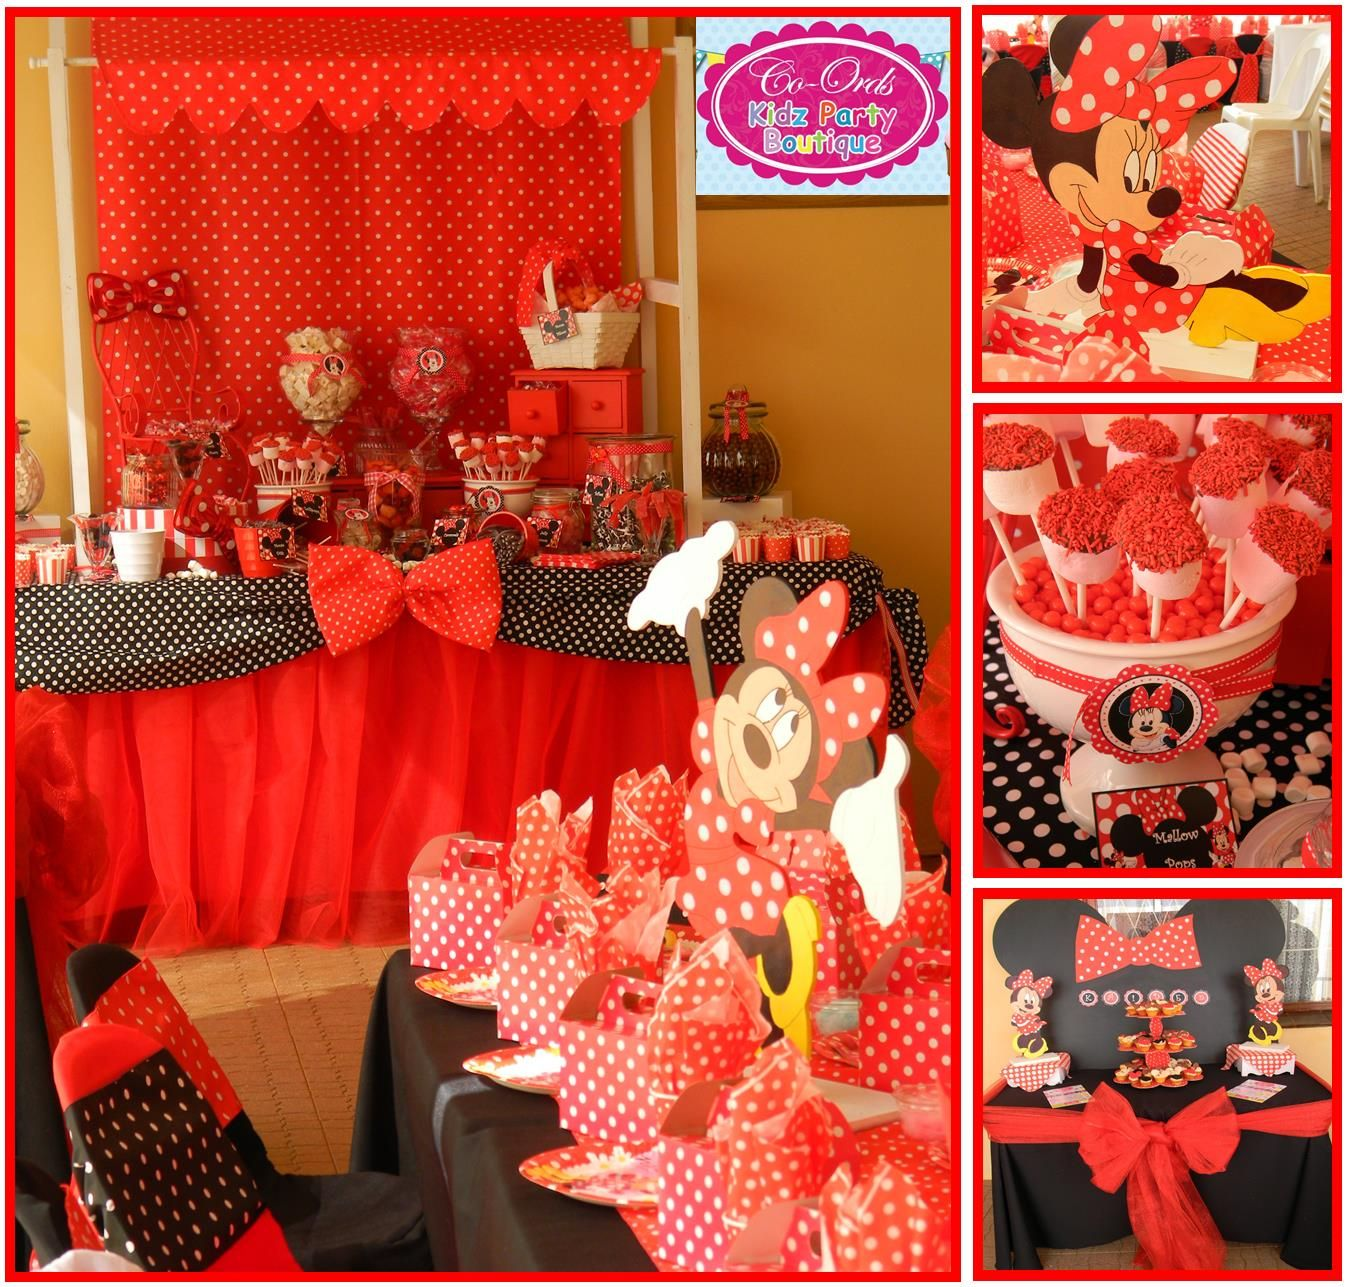 Minnie Mouse Party - kiddies set up and candy buffet in red, black